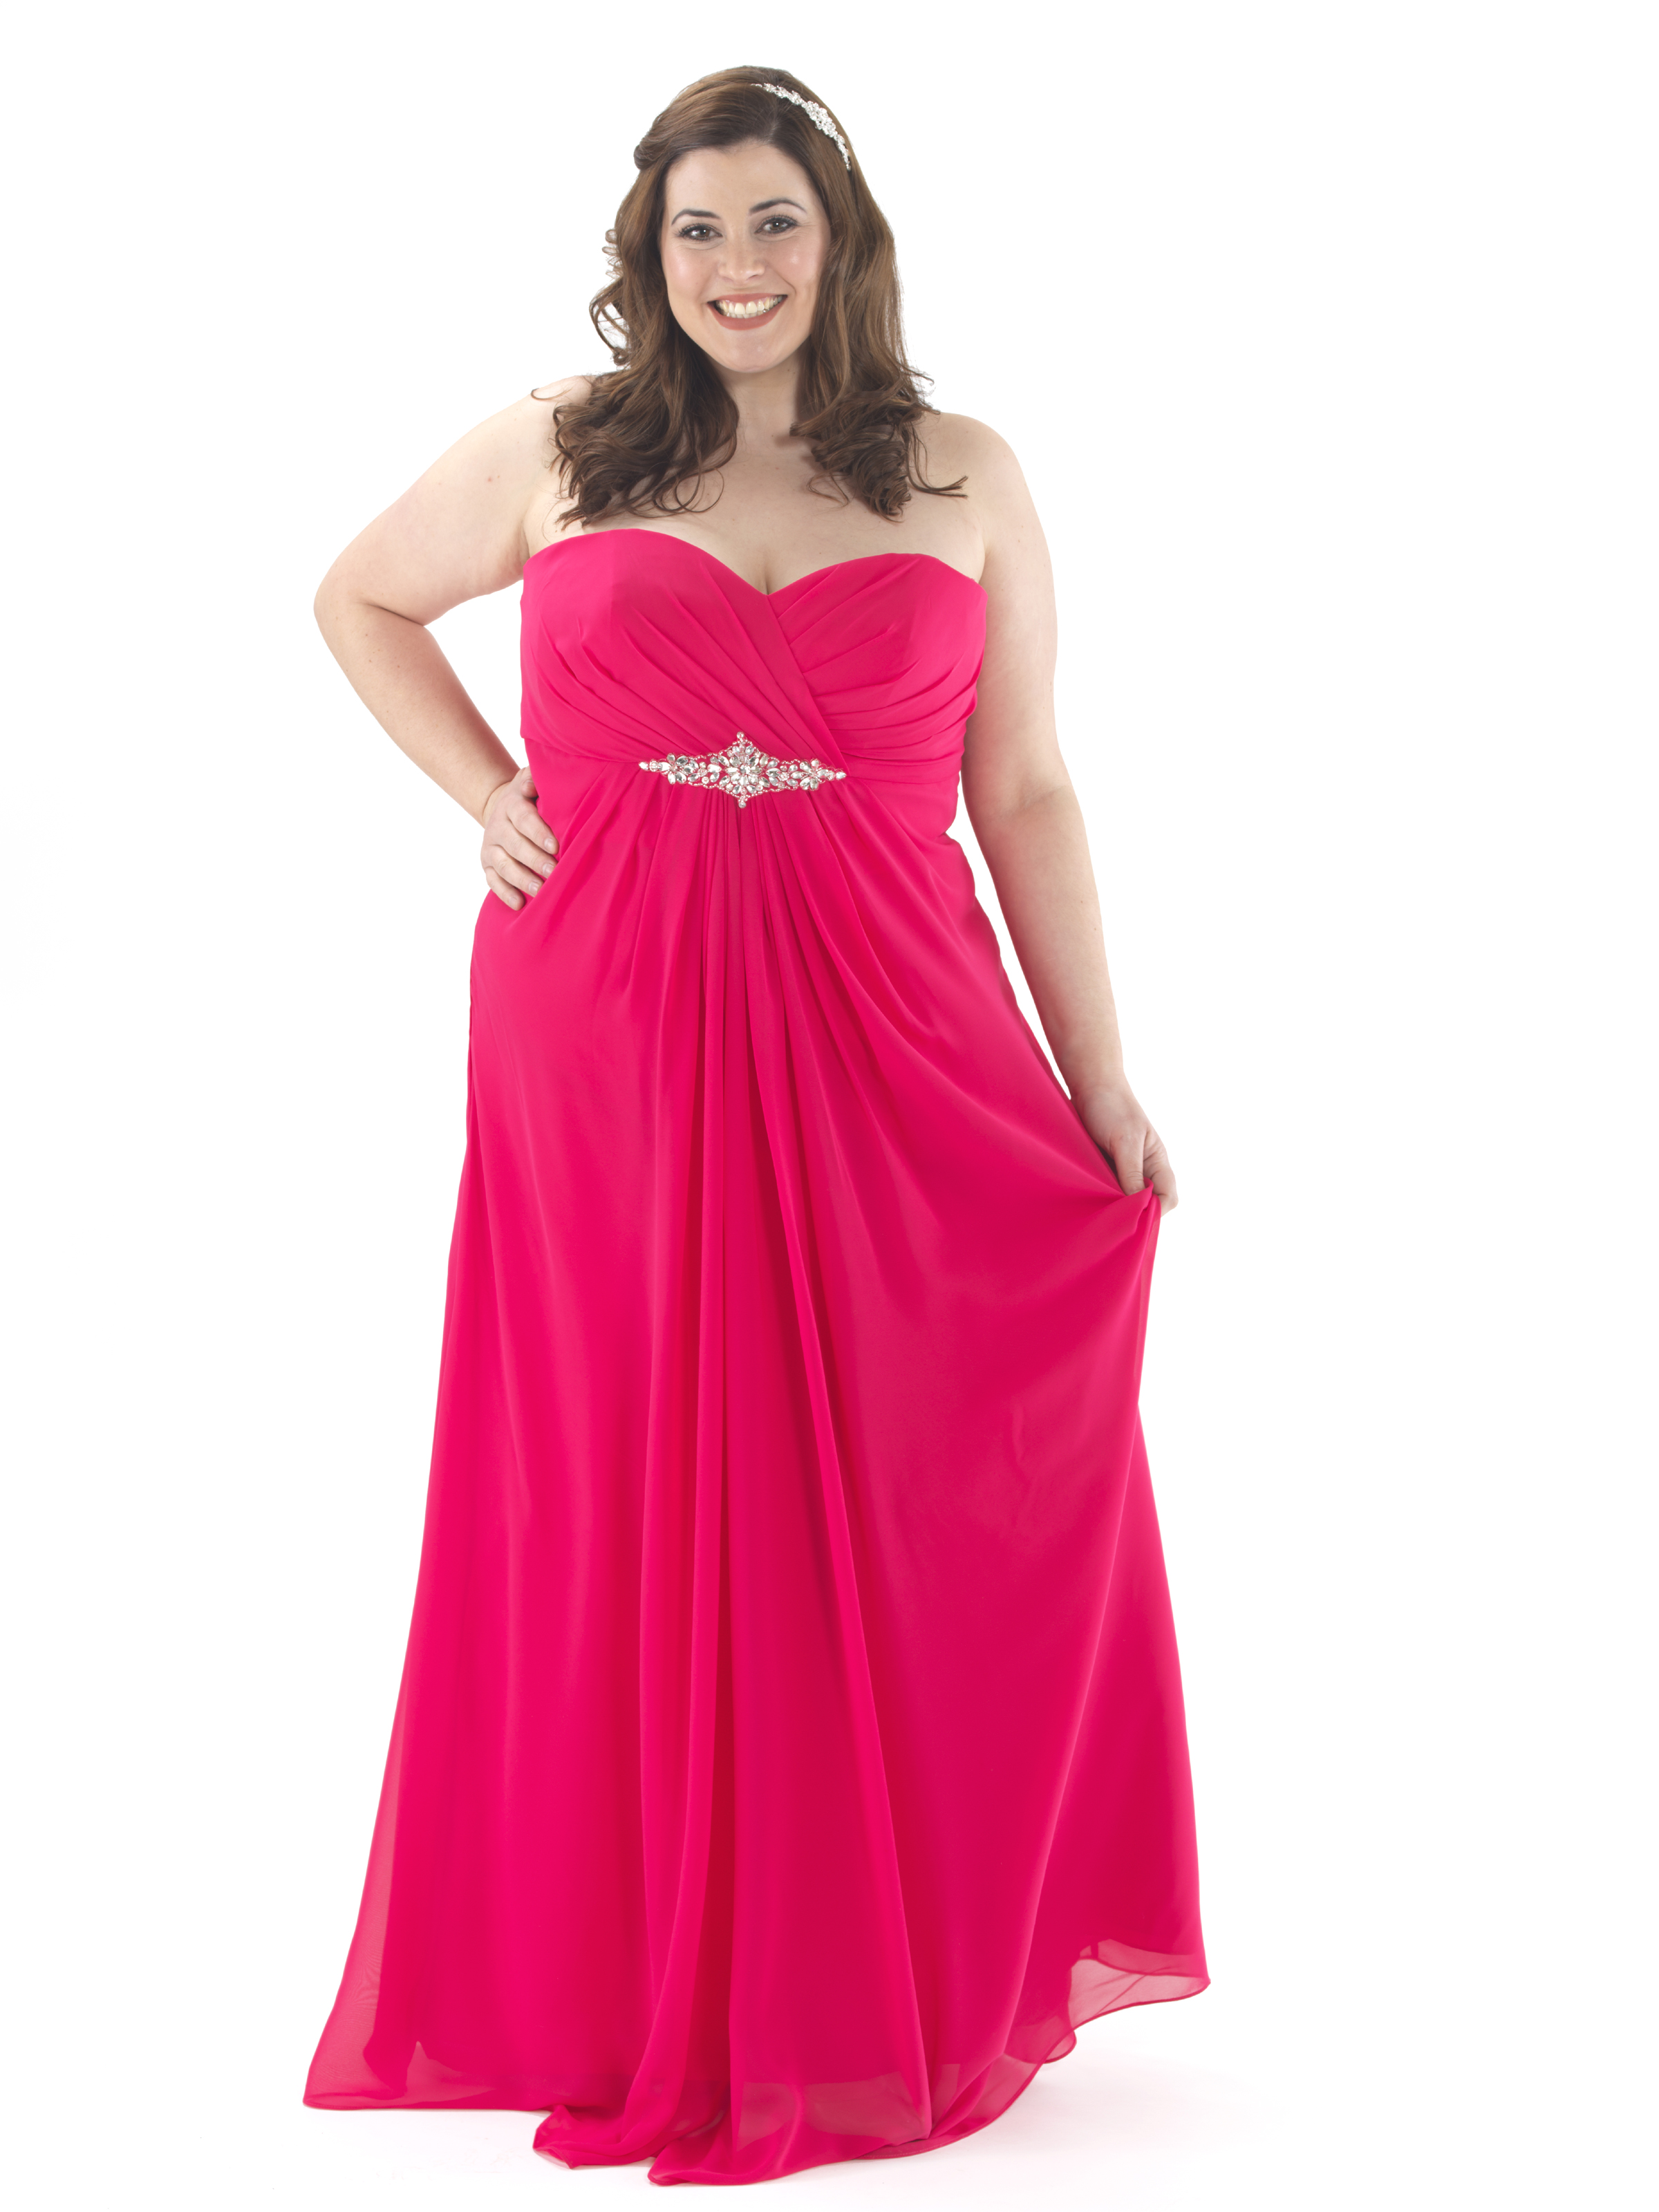 The new linzi jay curve collection is perfect for plus size en338 en338 tags bridesmaid dresses ombrellifo Image collections